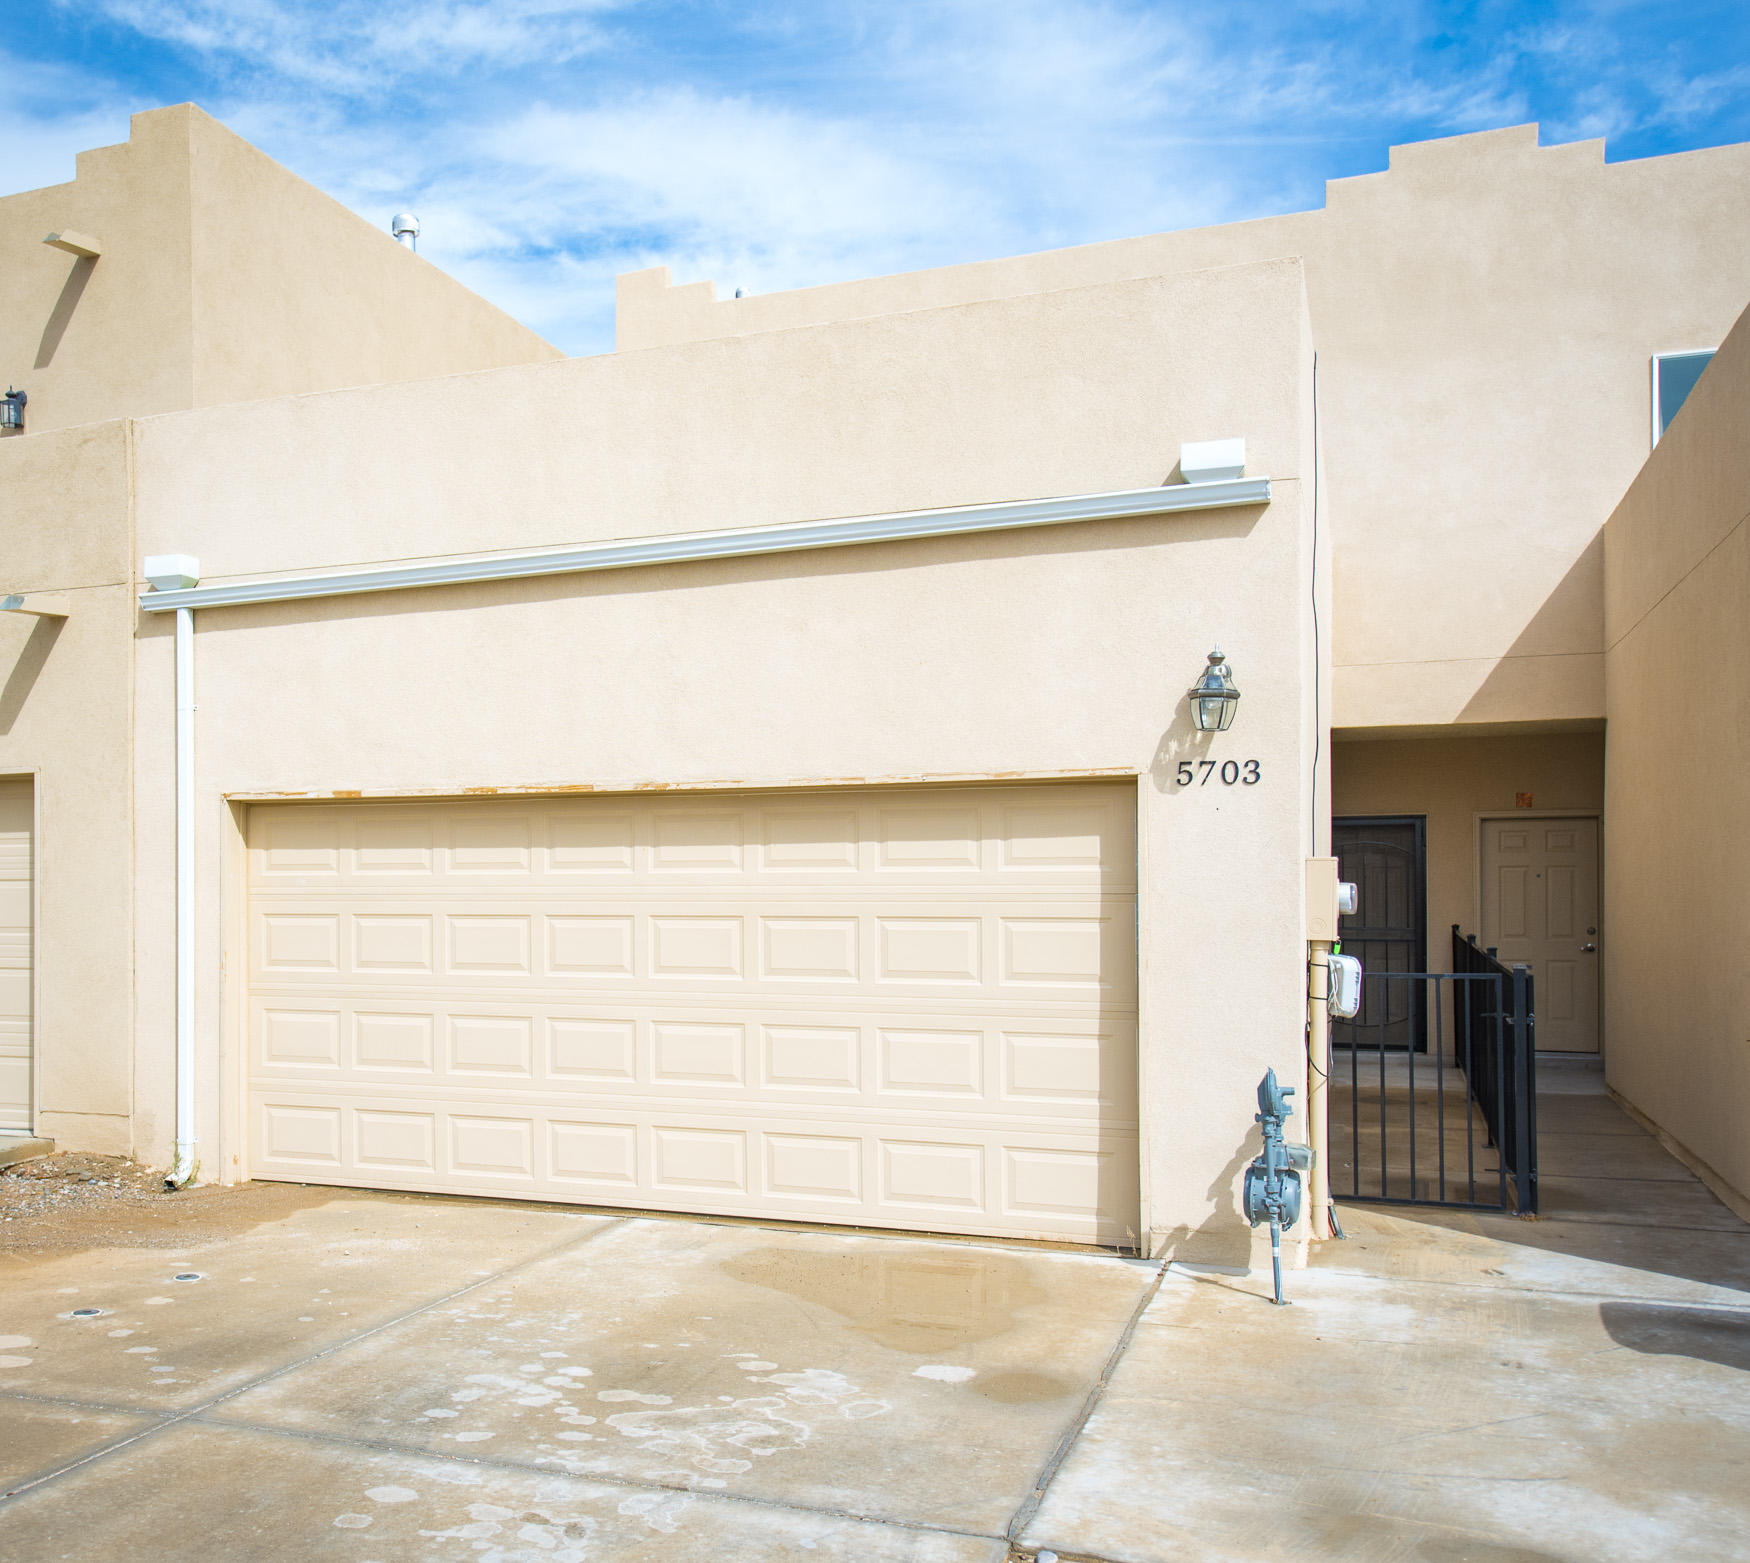 Welcome home! This lovely townhome located in ABQ's Westside is 5 years old with a very accommodating floor plan. Granite counter tops and wood-tile flooring in the downstairs. The home is equipped with refrigerated A/C and a low maintenance backyard. Schedule your appointment to view today!